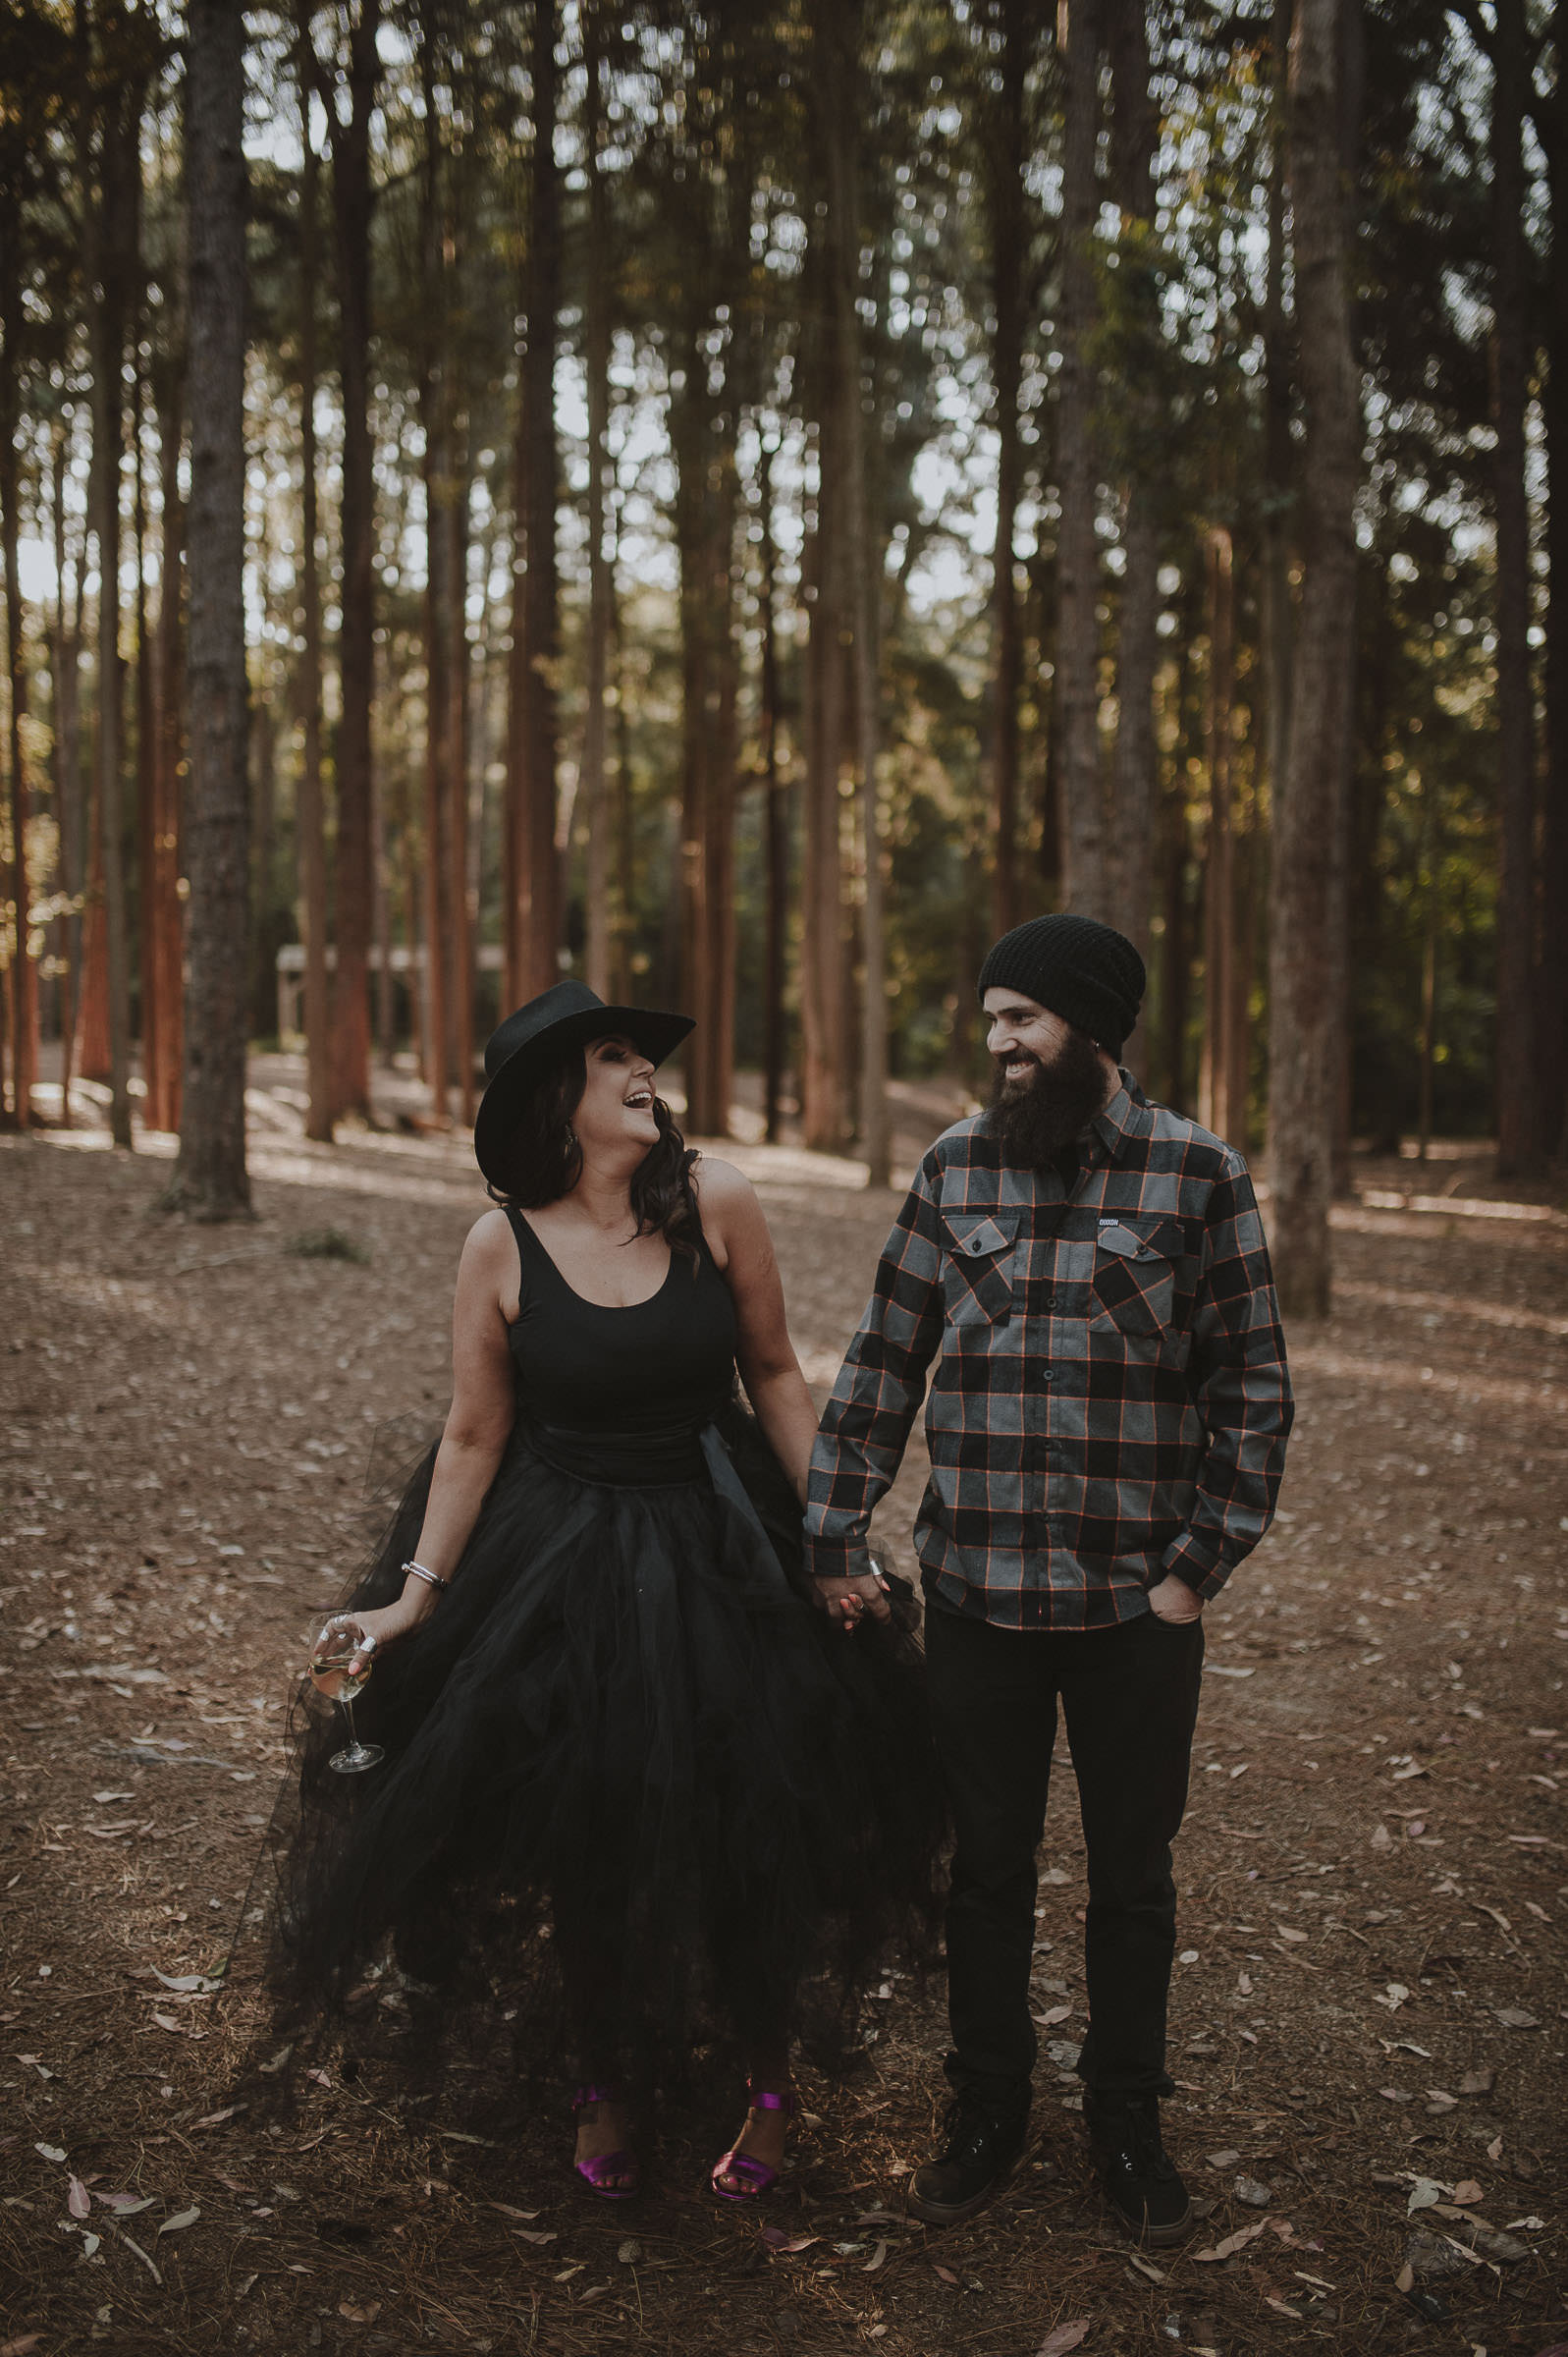 Madeline_Jamie_Watagens_Pine_Forest_Engagement_Shoot_Blog-22.jpg